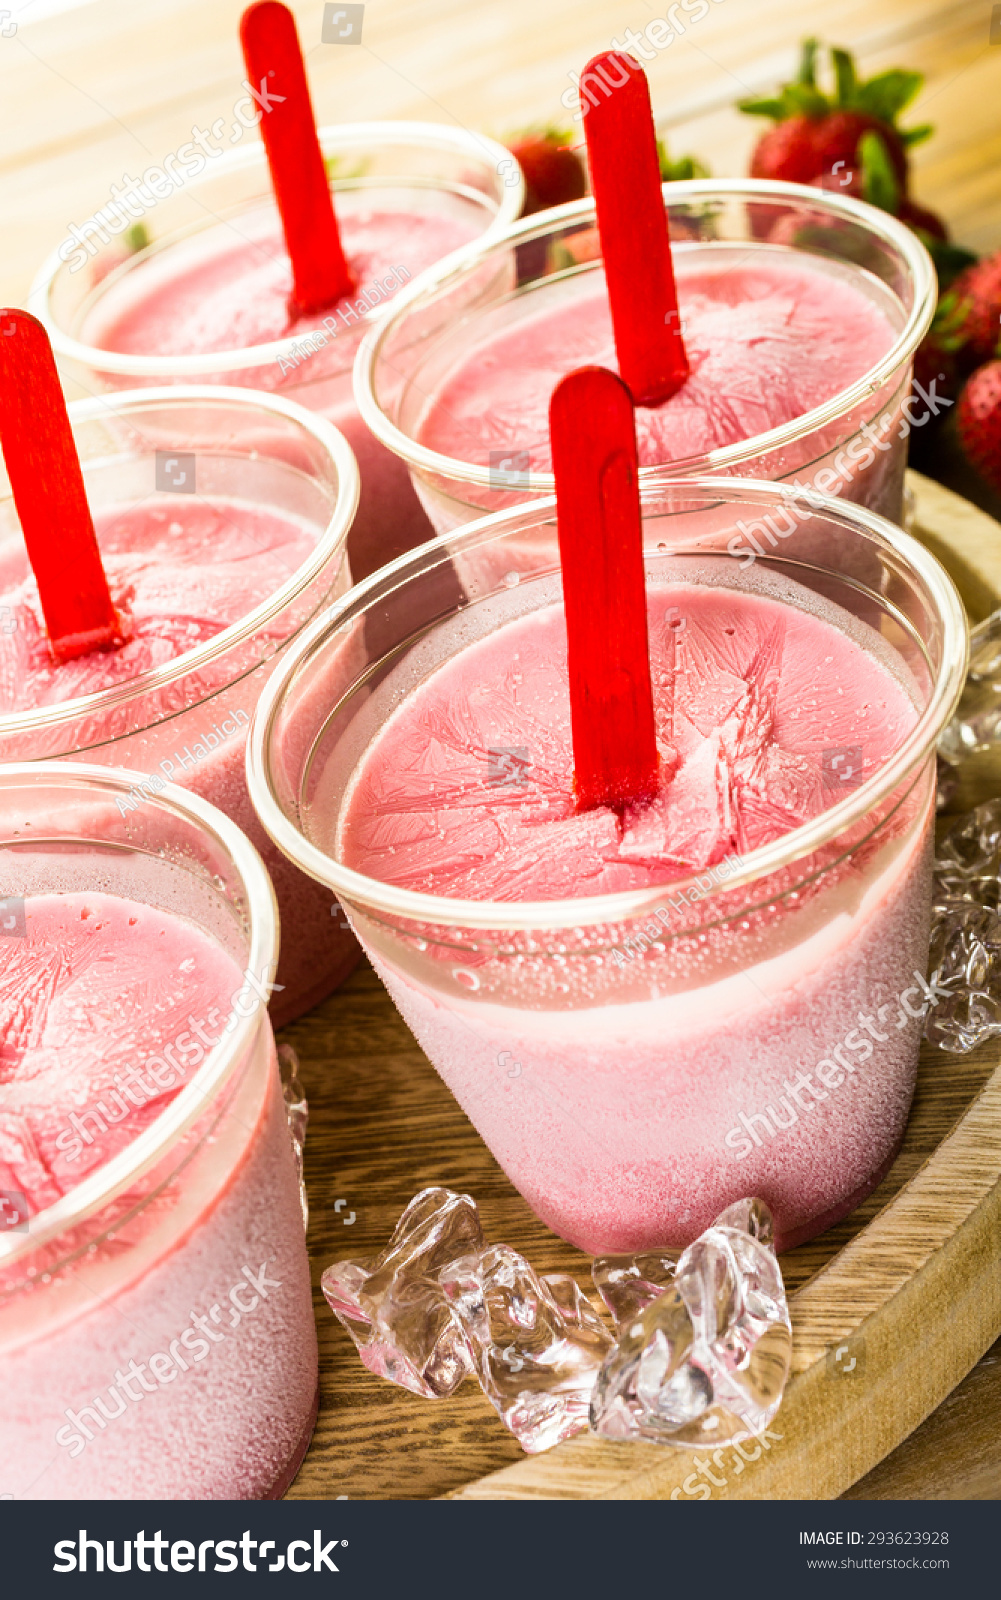 stock-photo-homemade-strawberry-popsicles-made-in-plastic-cups-293623928jpg